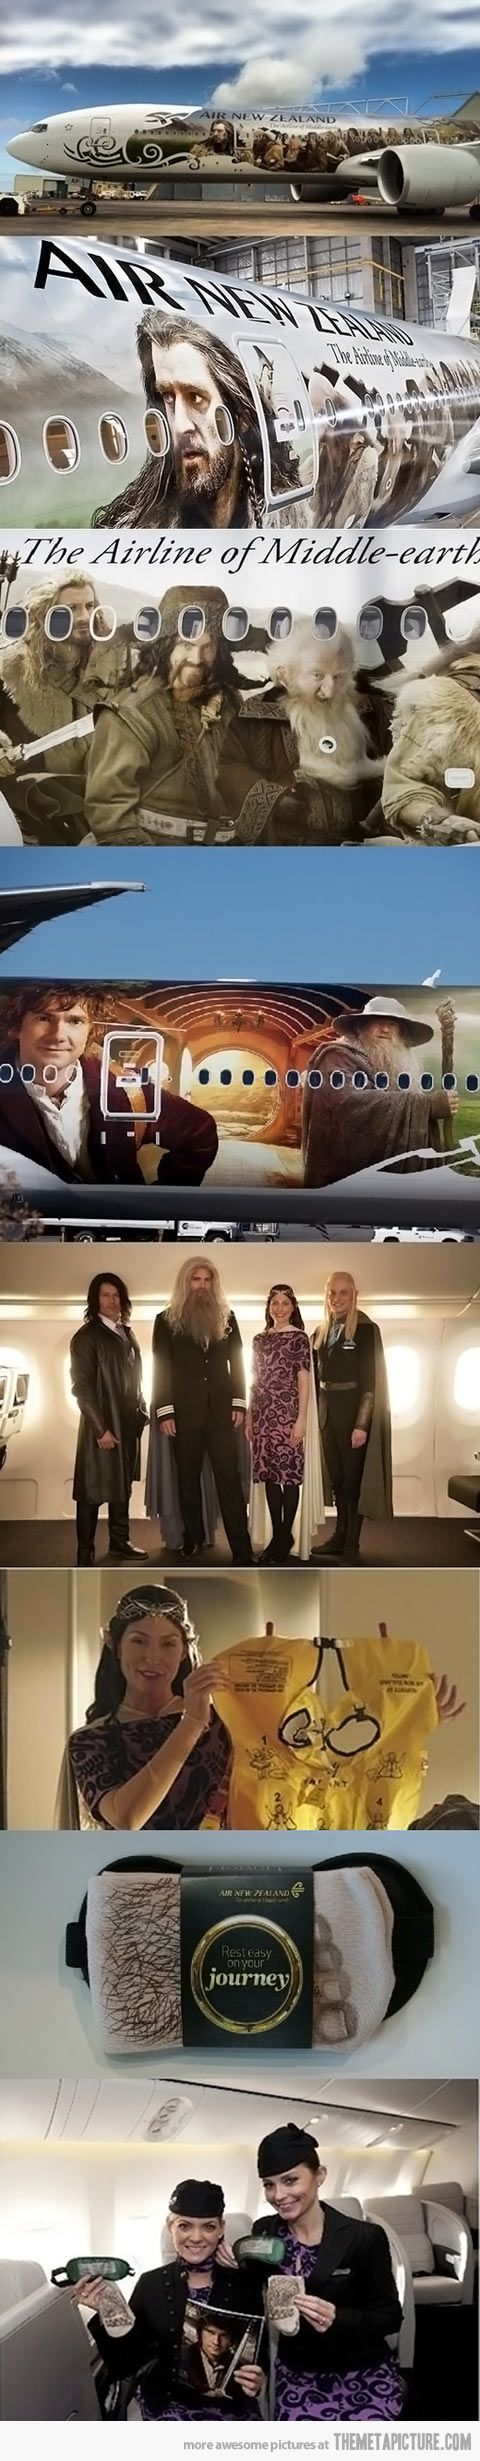 """Did you know the hobbit movie was taken place in New Zealand in a place called hobbiton I think or something like that .anyway a """" Unexpected journey """" was filmed there for all the hobbit and lord of the rings fans like me!"""